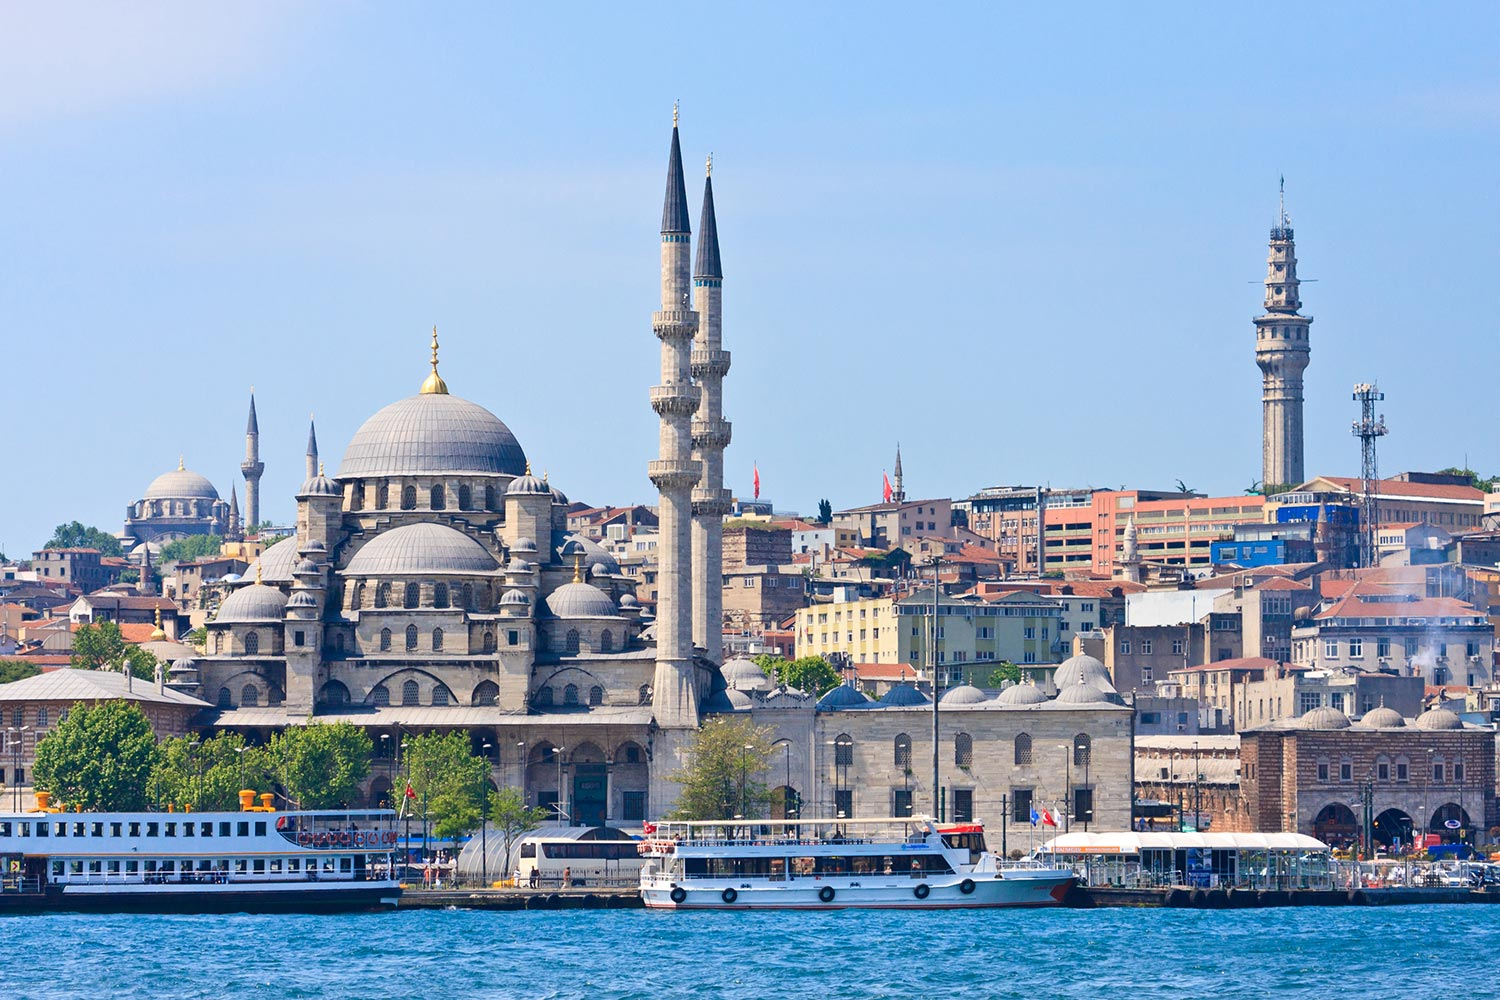 Cityscape of Istanbul next to turquoise water